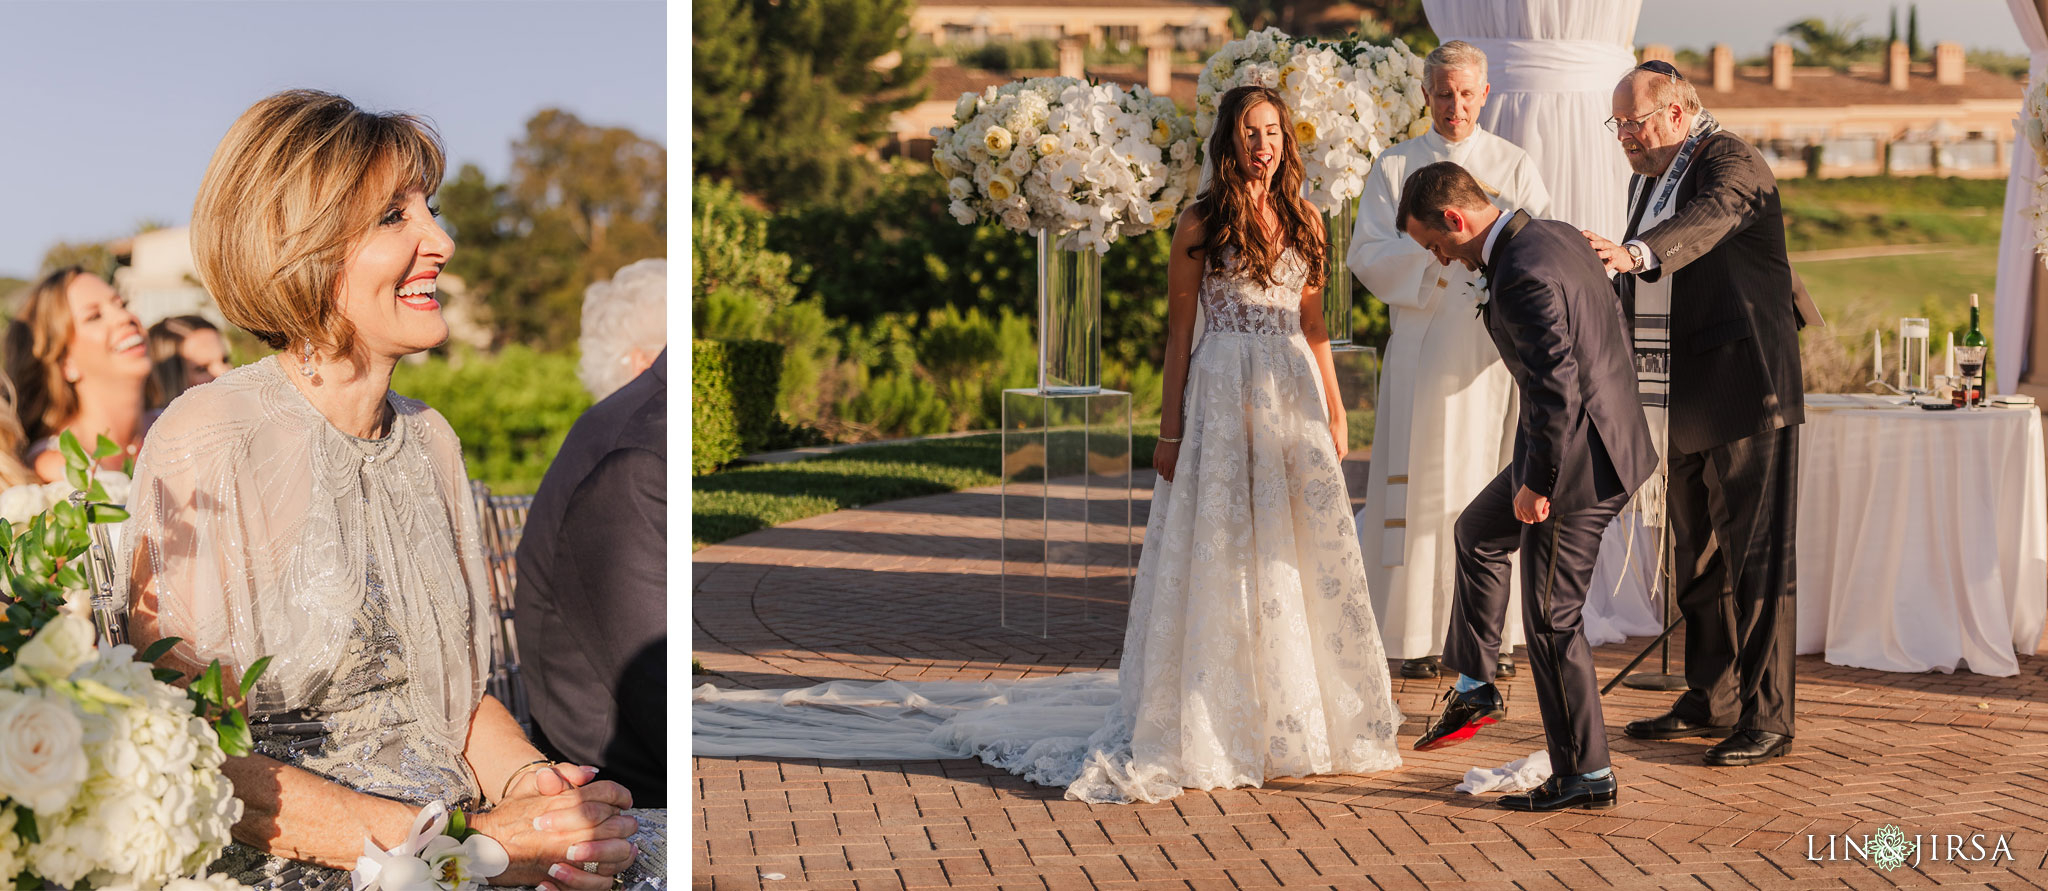 80 pelican hill orange county wedding photography